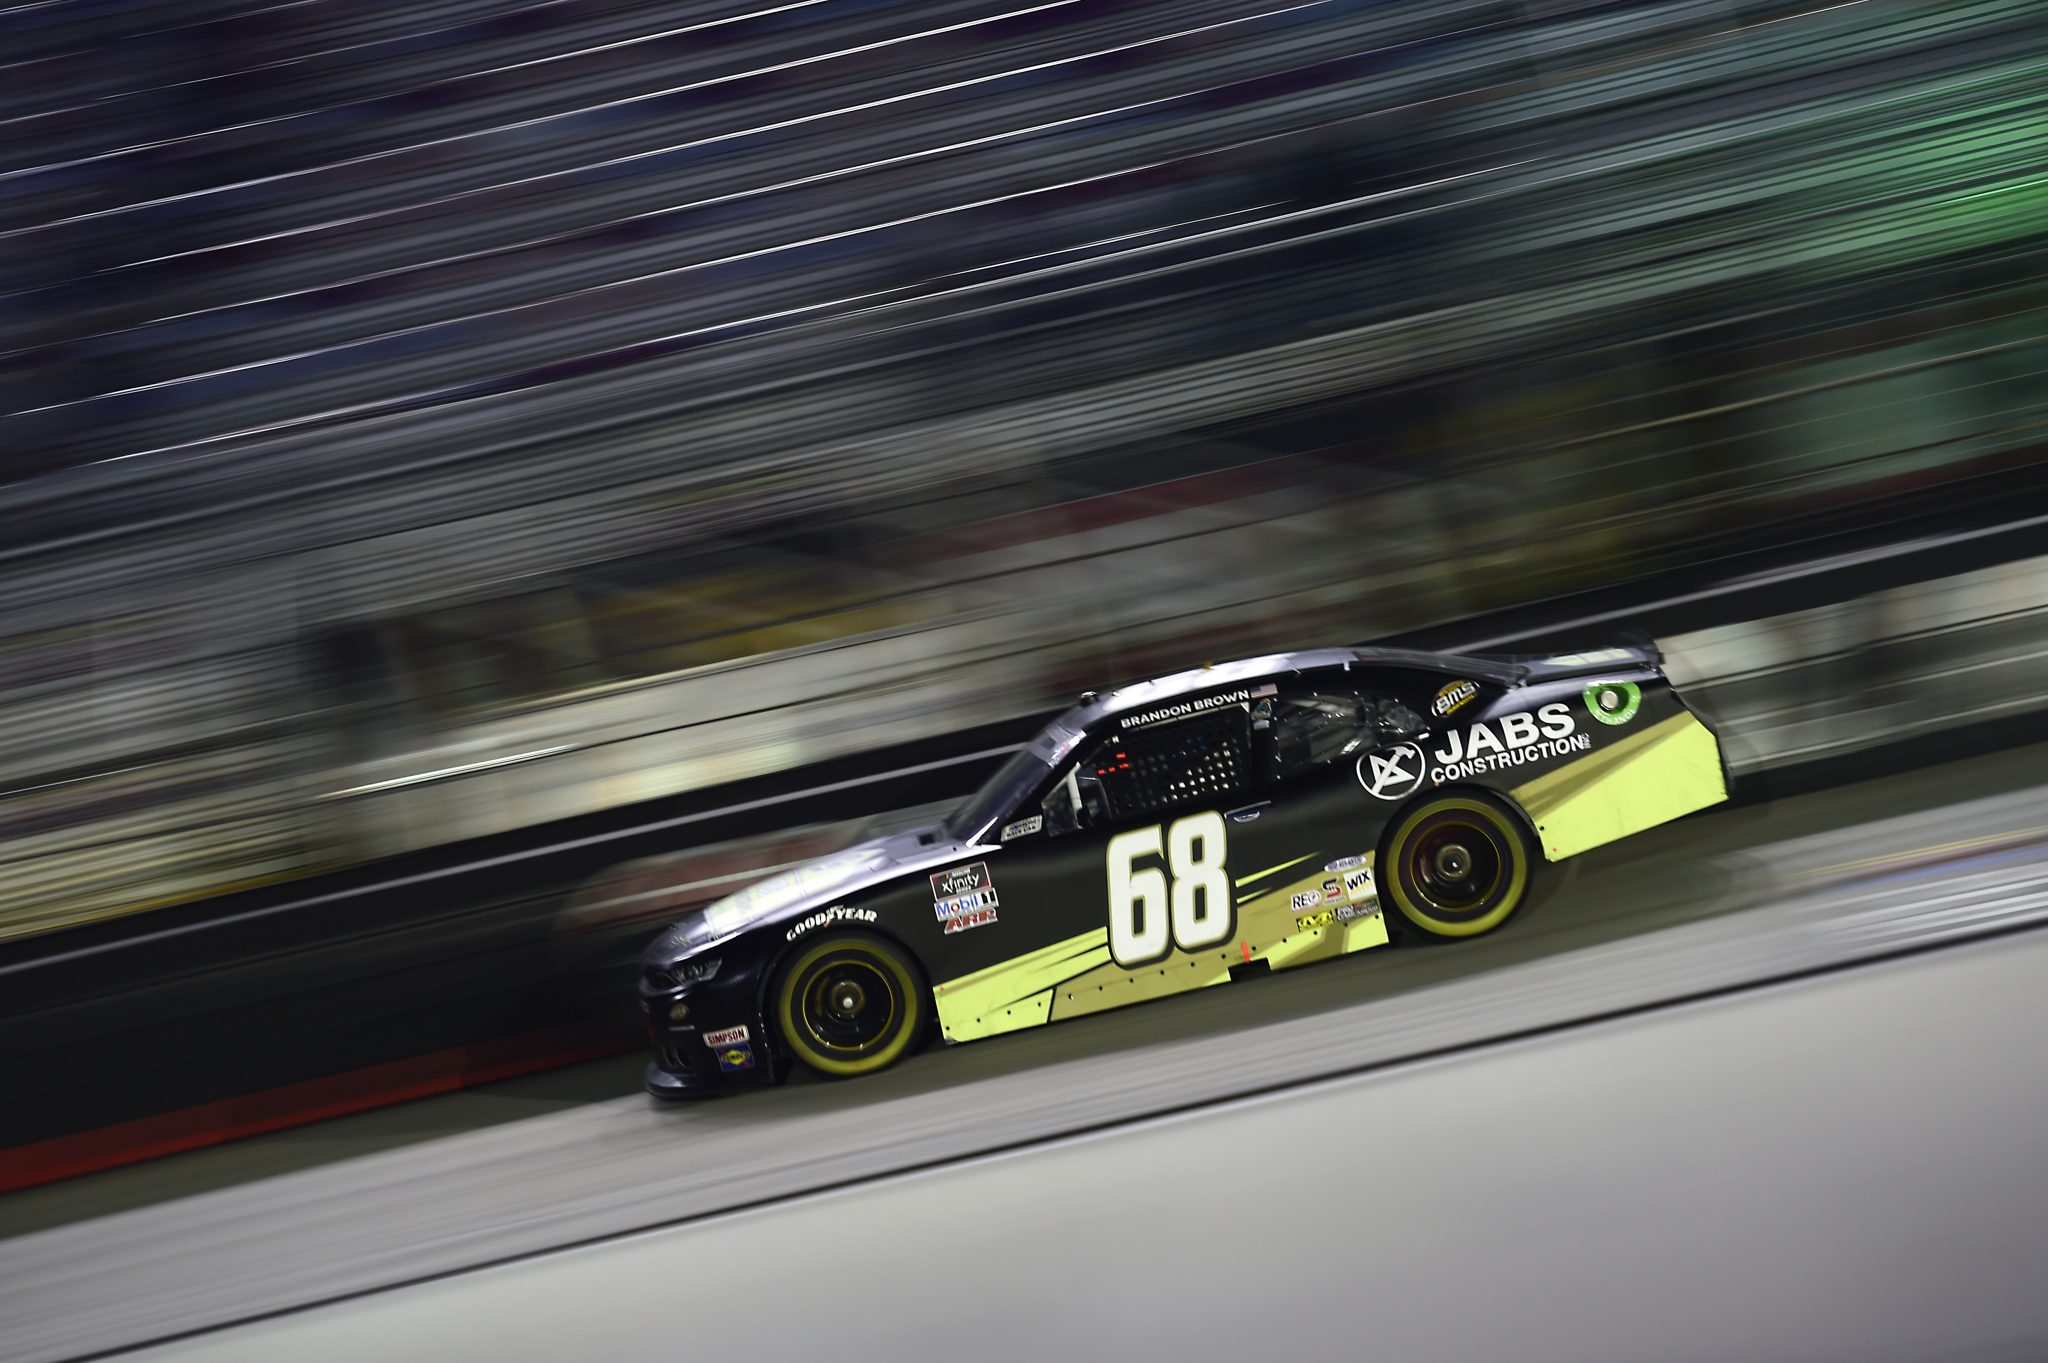 BRISTOL, TENNESSEE - SEPTEMBER 18: Brandon Brown, driver of the #68 Jabs Construction Chevrolet, drives during the NASCAR Xfinity Series Food City 300 at Bristol Motor Speedway on September 18, 2020 in Bristol, Tennessee. (Photo by Jared C. Tilton/Getty Images) | Getty Images